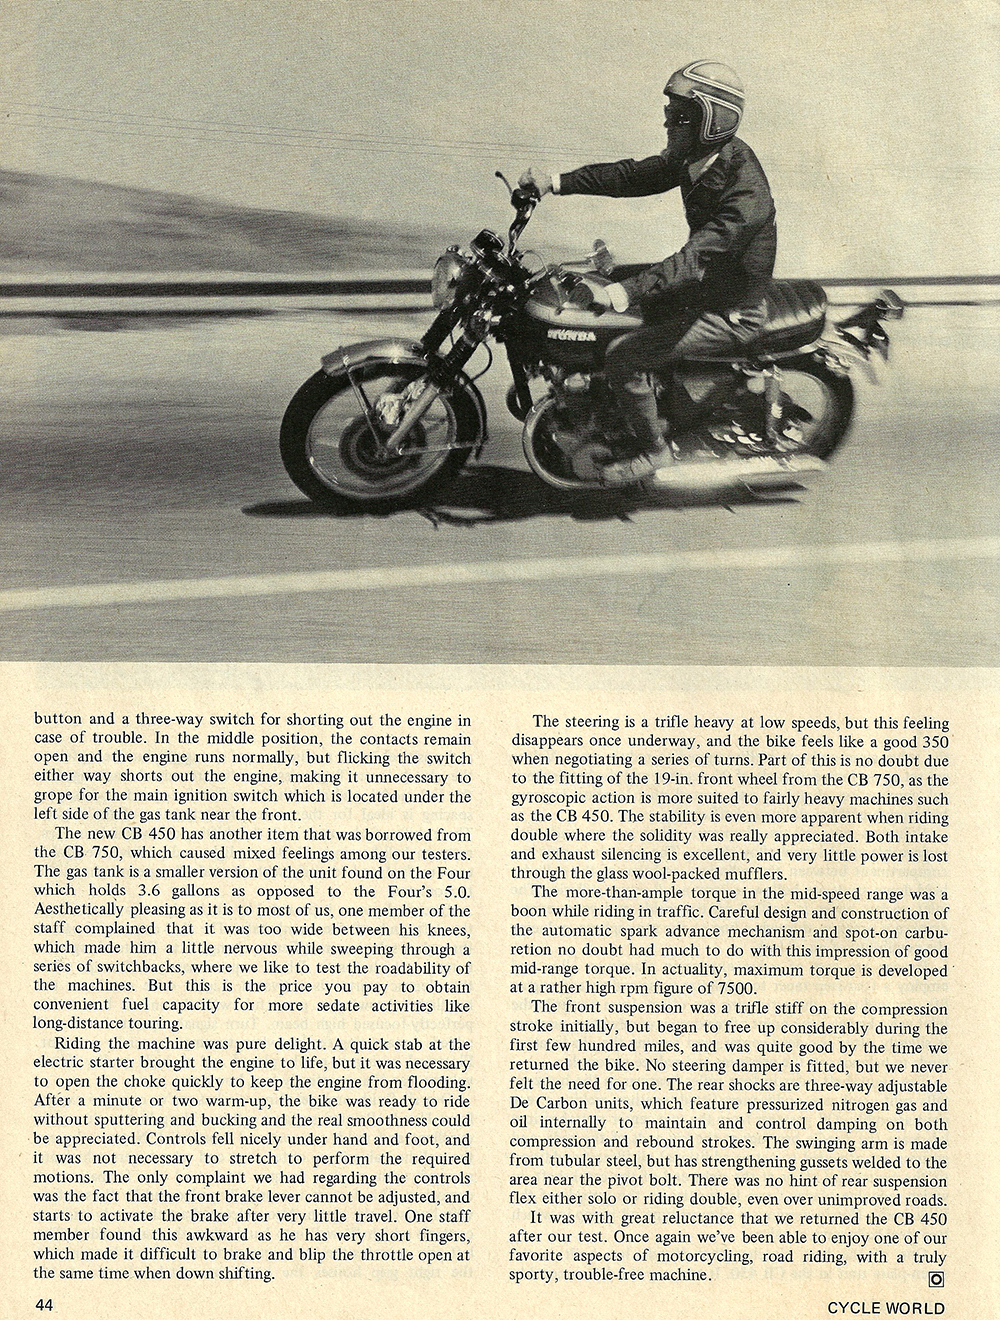 1970 Honda CB450 road test 04.jpg